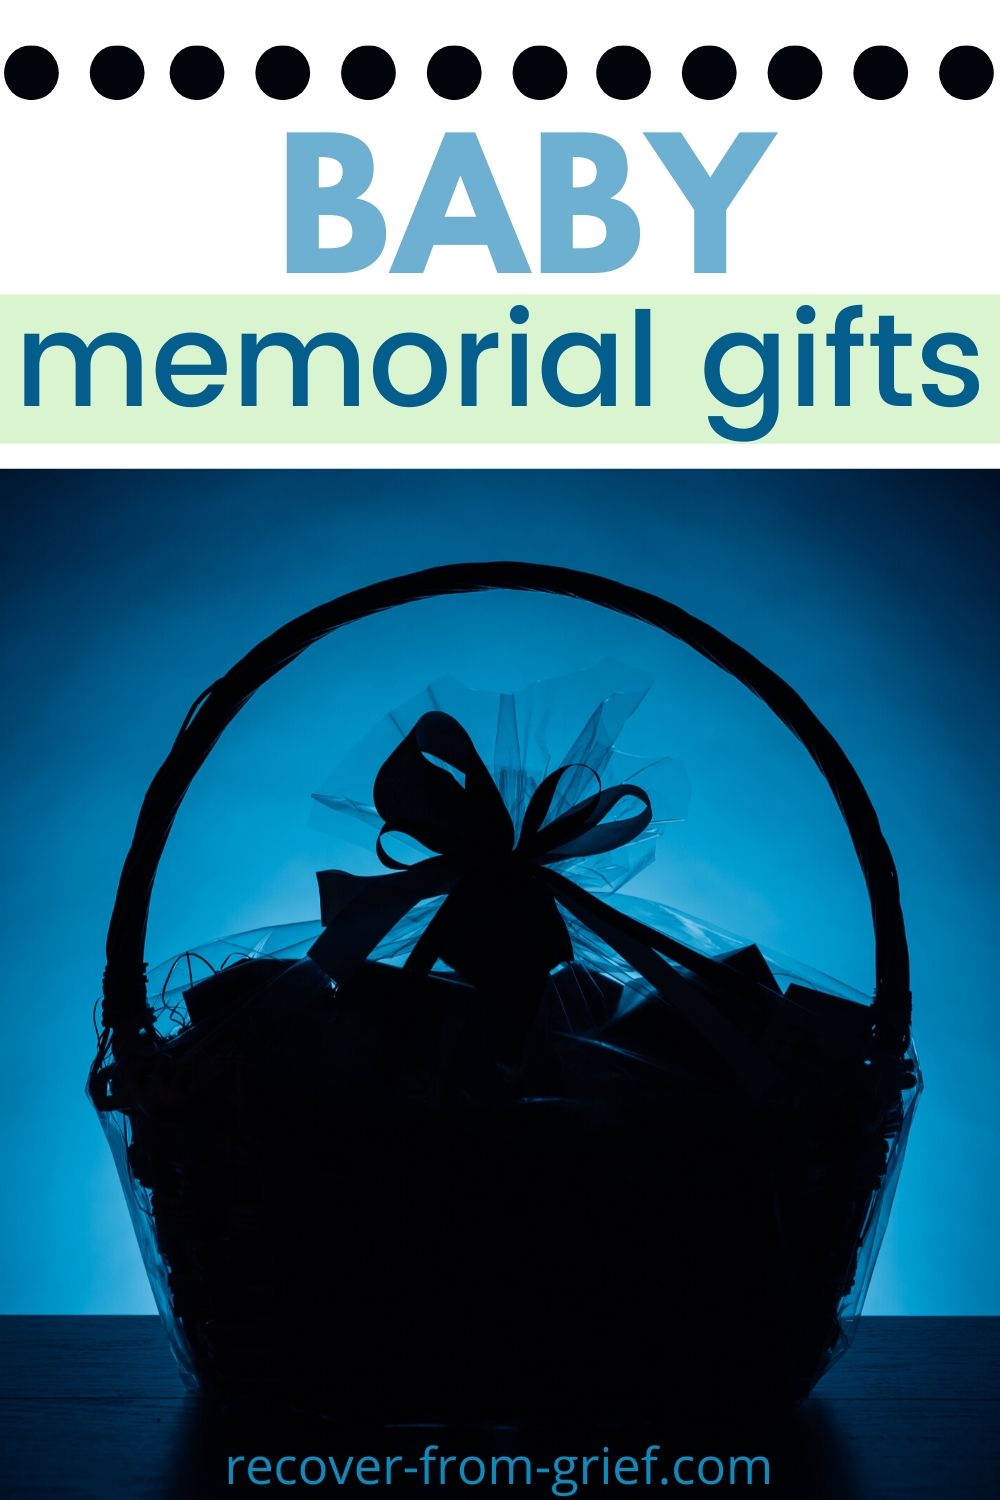 Baby memorial gifts